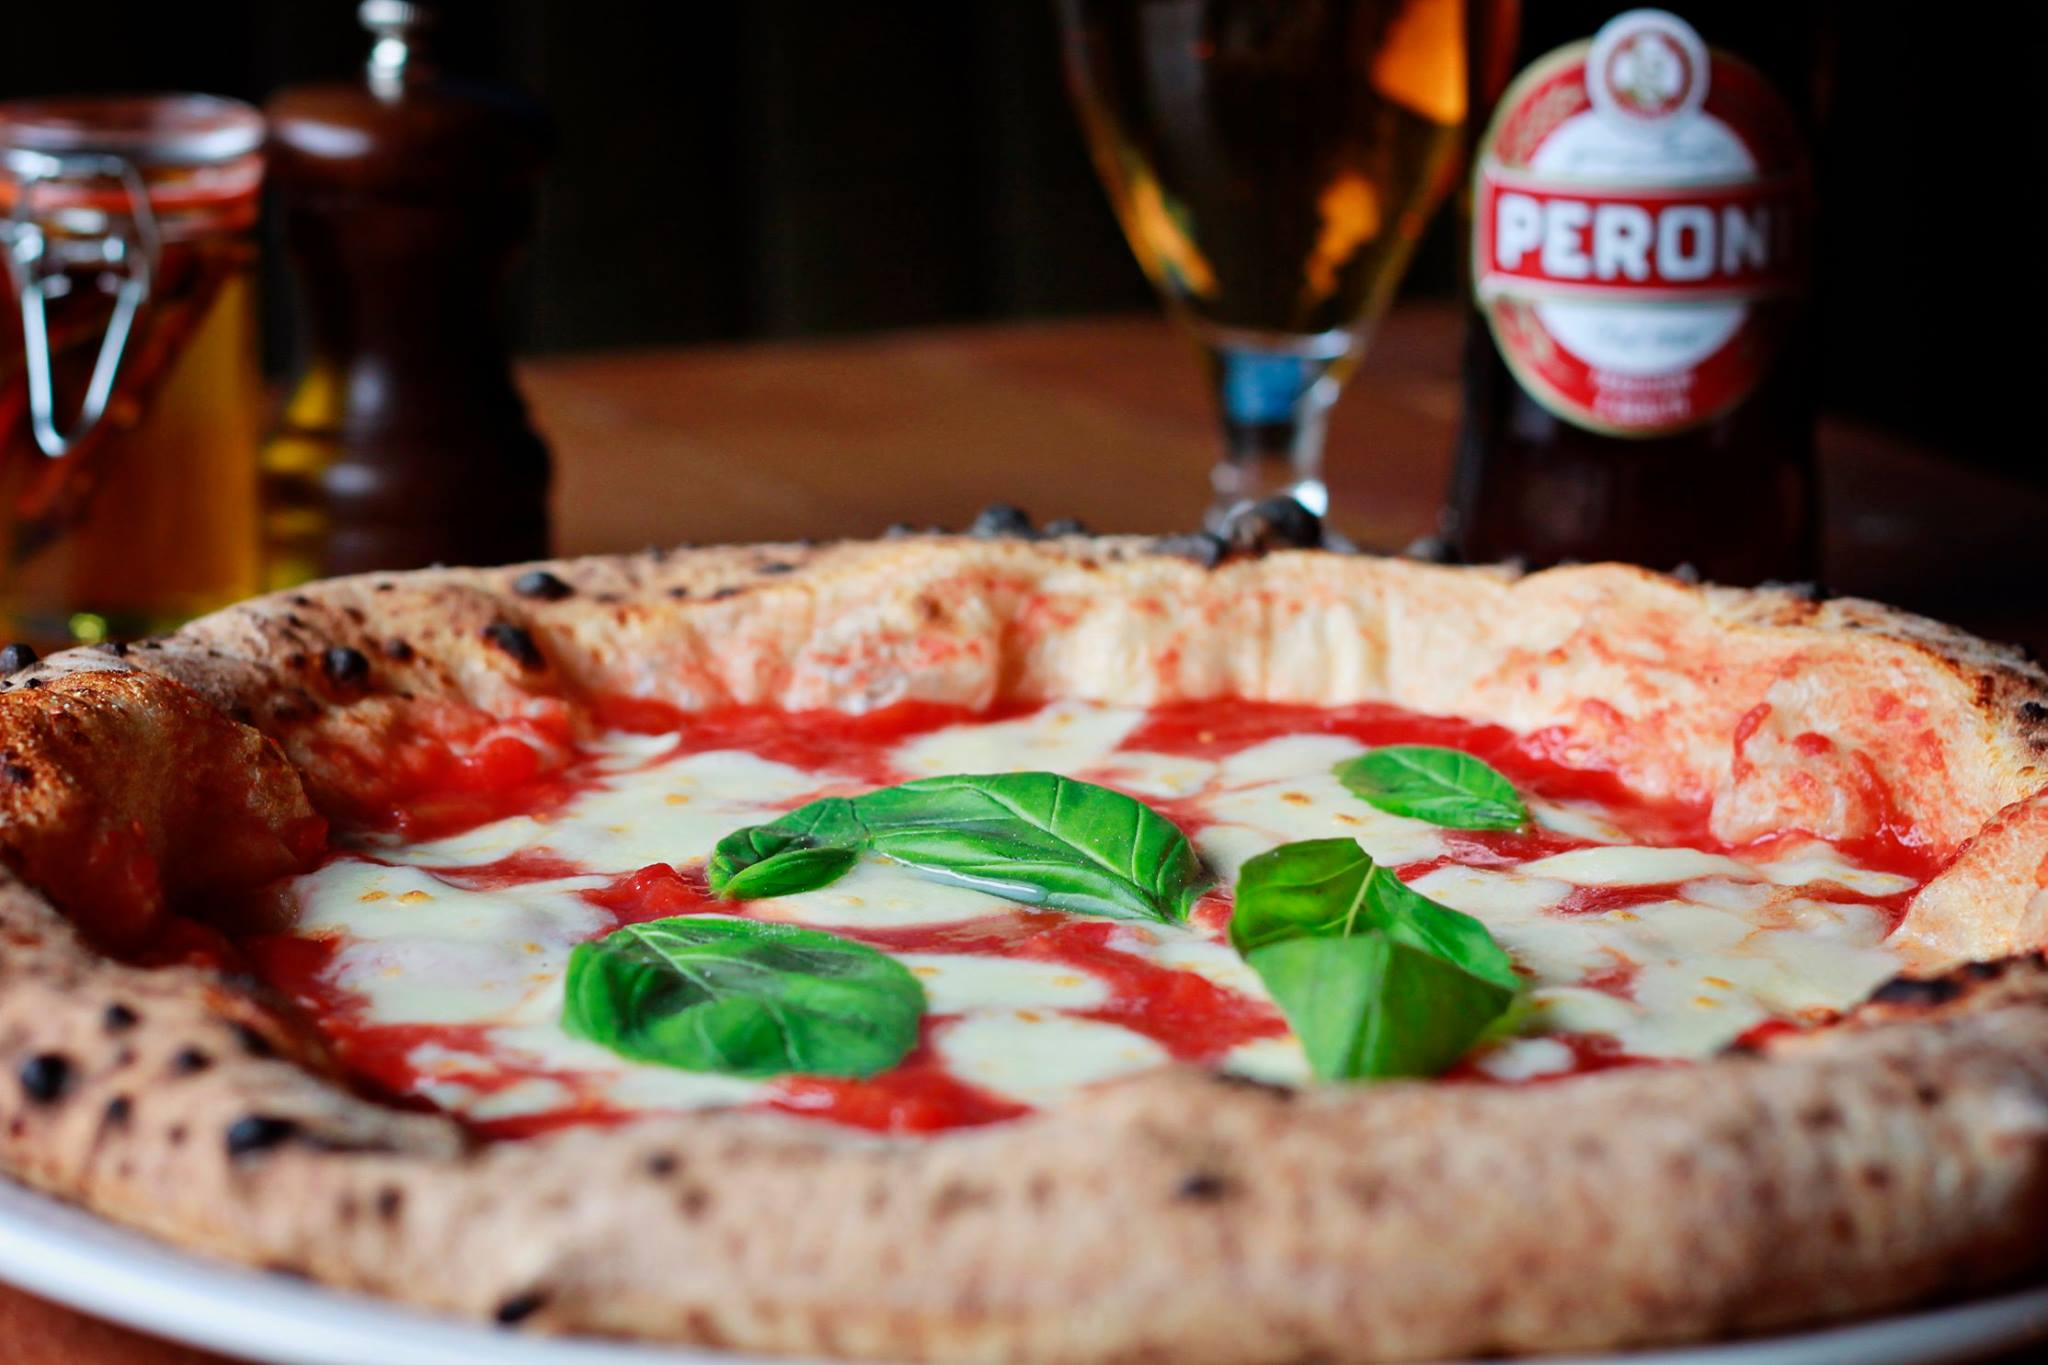 cirillo's dublin, gastrogays dublin, cirillos pizza, cirillos pizzeria, cirillos gastrogays, pizza dublin, pizza delivery dublin, pizza restaurant, italian restaurant dublin, vera pizza napoletana ireland, wood fired pizza oven ireland,